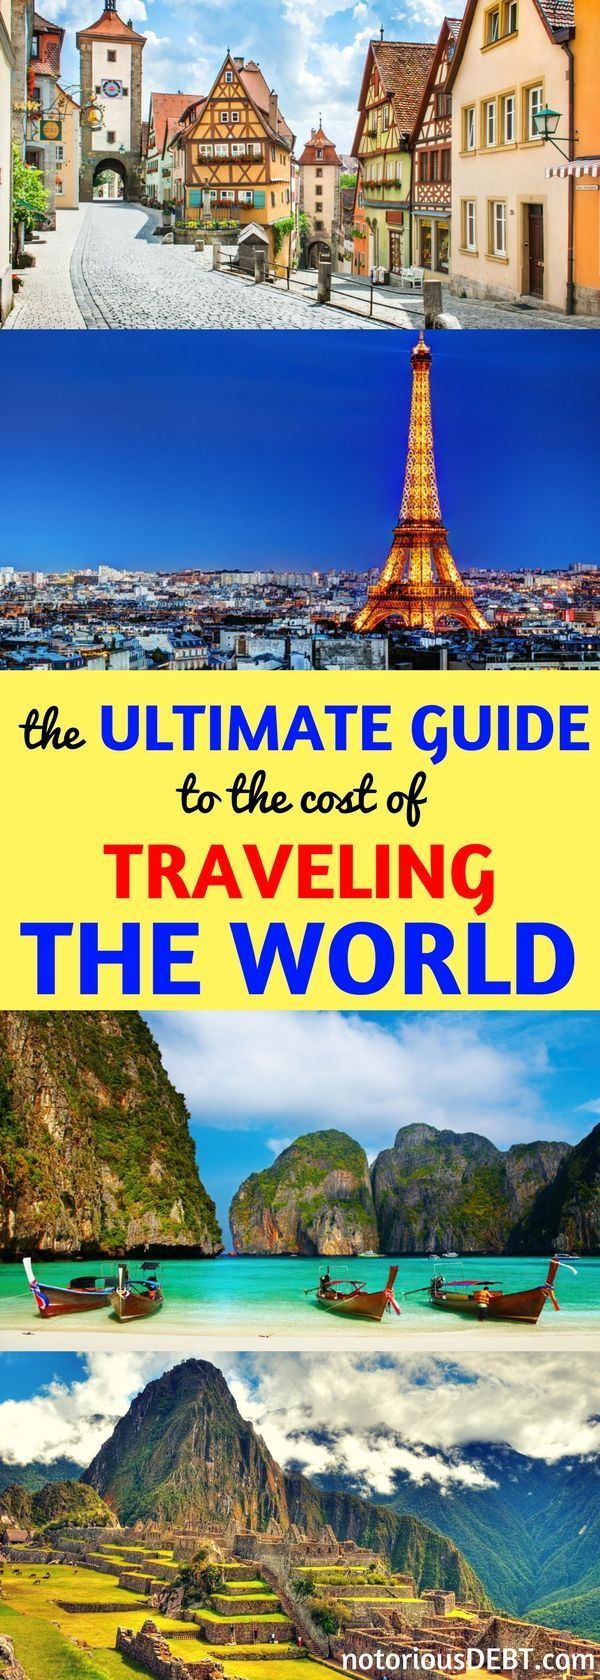 I used to think traveling was only for rich people. I was wrong! But I wanted to know: #how much does it REALLY cost to travel the world? I made this comprehensive list of travel adventures from all over the globe. I crunched the numbers from 46 different countries so you can easily see how much you can expect to pay no matter where you want to go! Turns out, you CAN travel on a #budget! Use this list for #ideas on where to travel and how much you can expect to pay! #vacations #tips